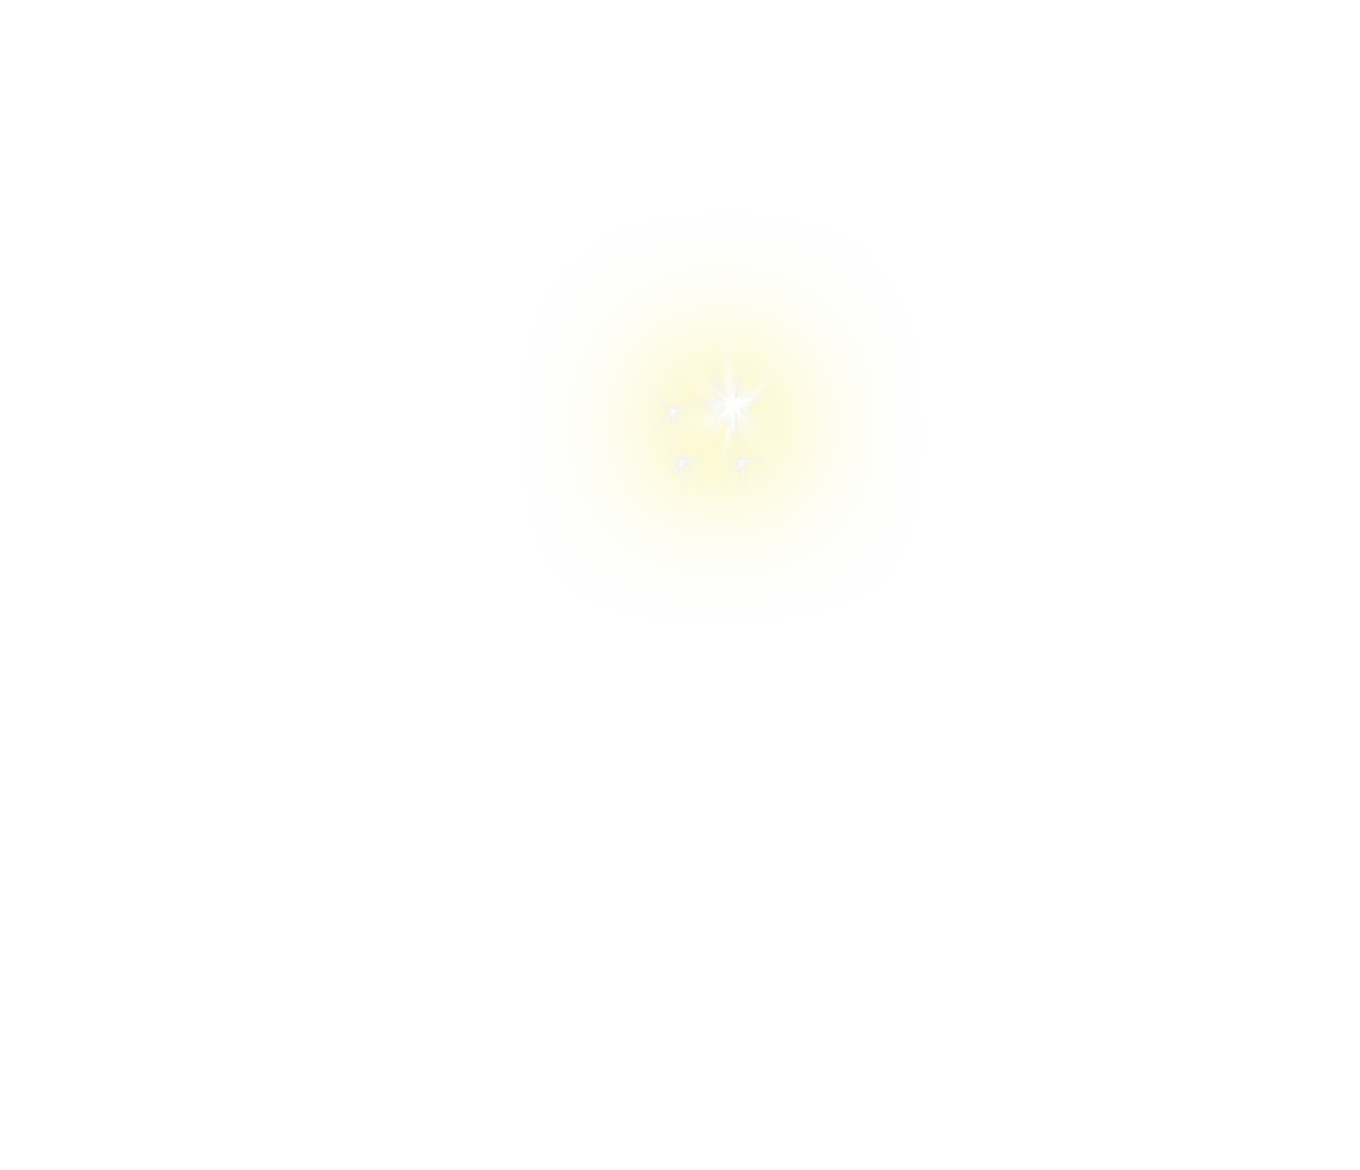 Sparkle effect png. Yellow